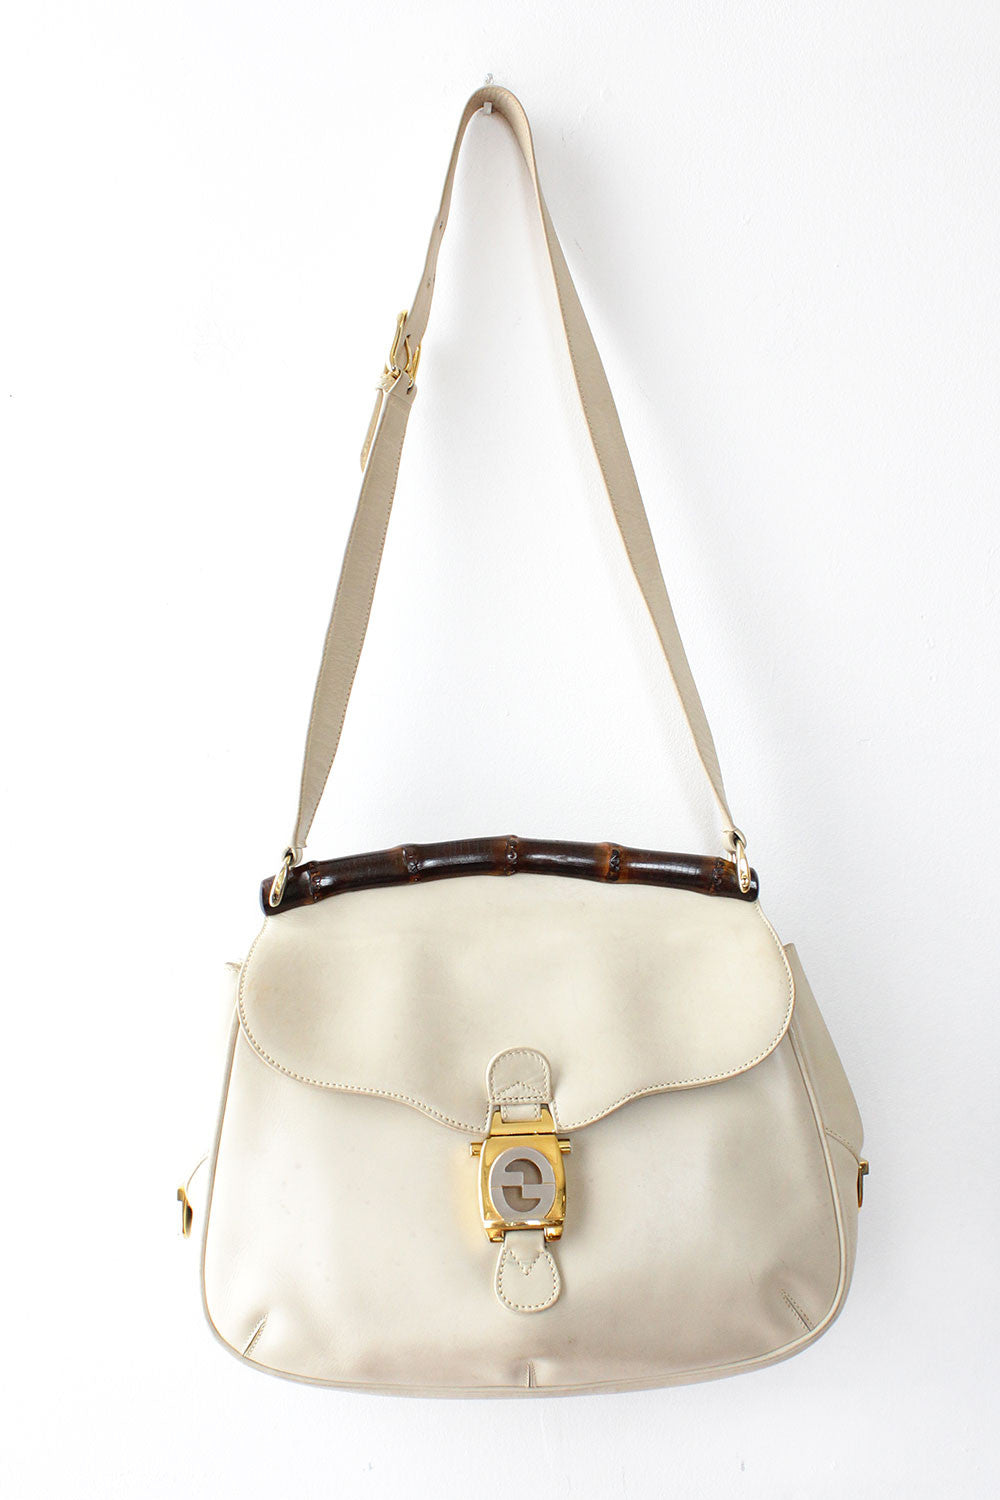 Cream Gucci Bamboo Frame Hobo Bag